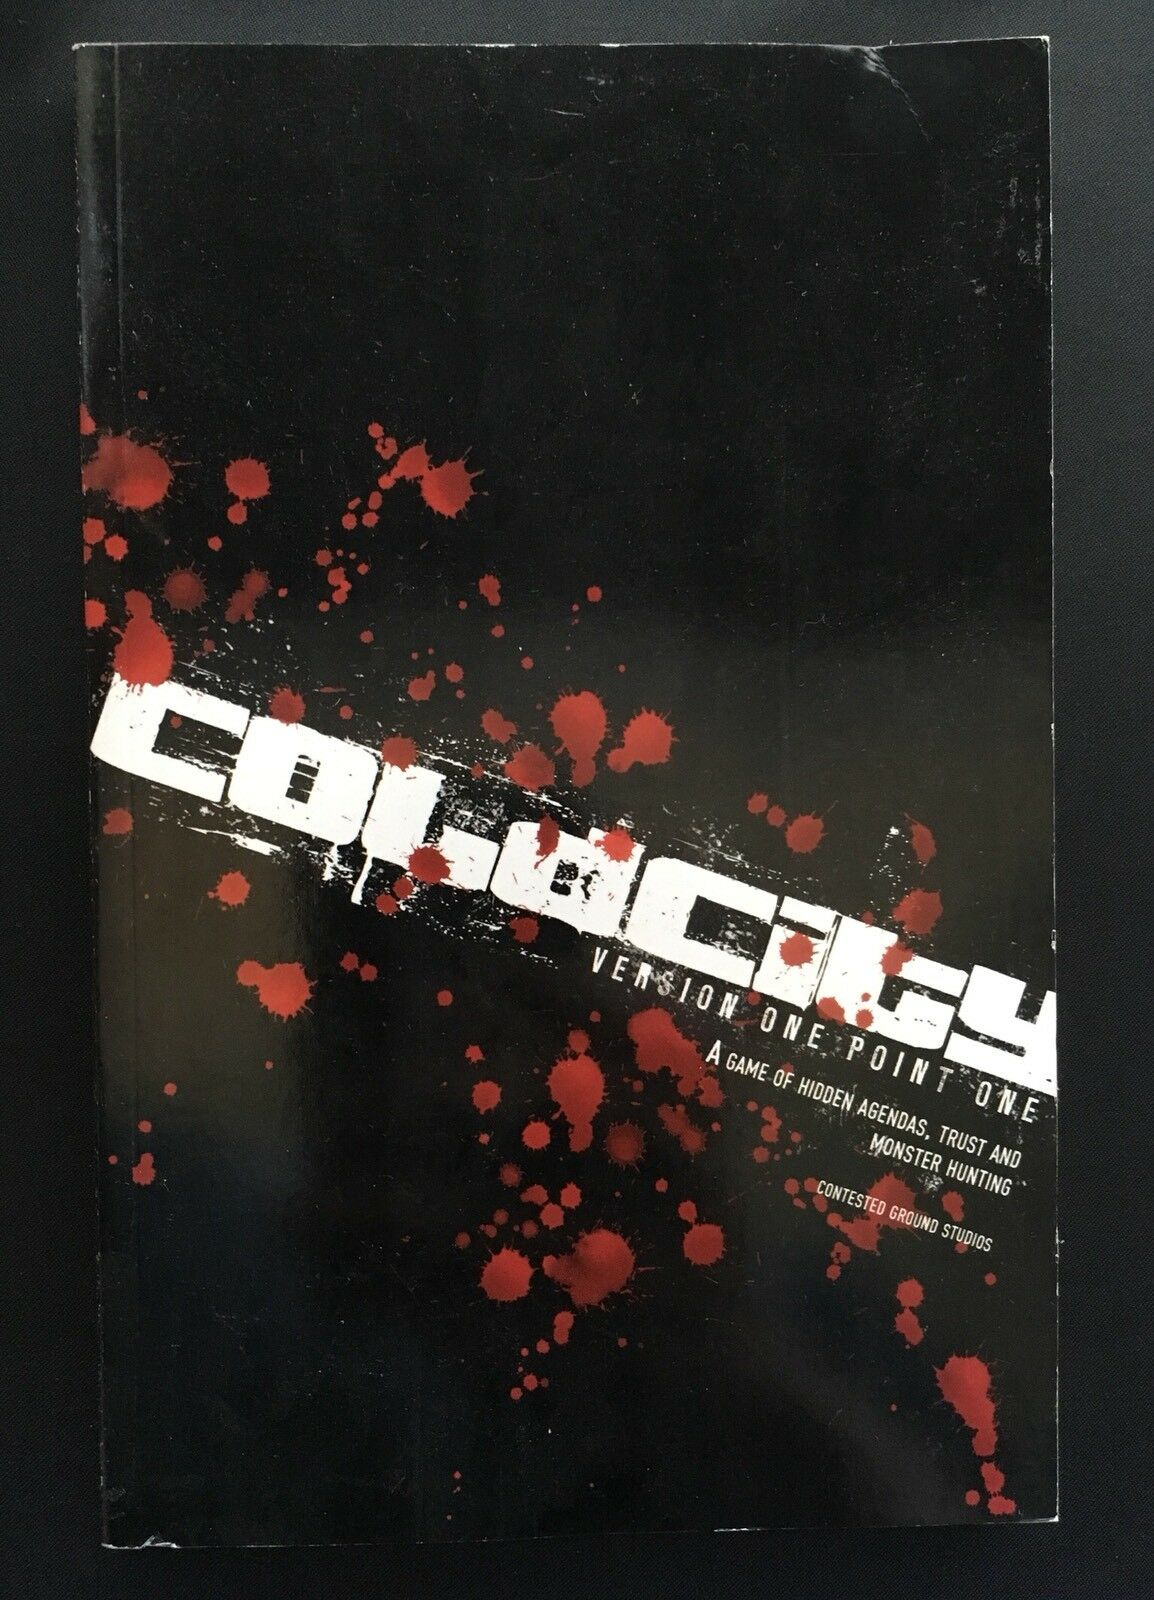 COLD CITY - Version One Point One - Contested Ground Studios - Cubicle 7 CB76500